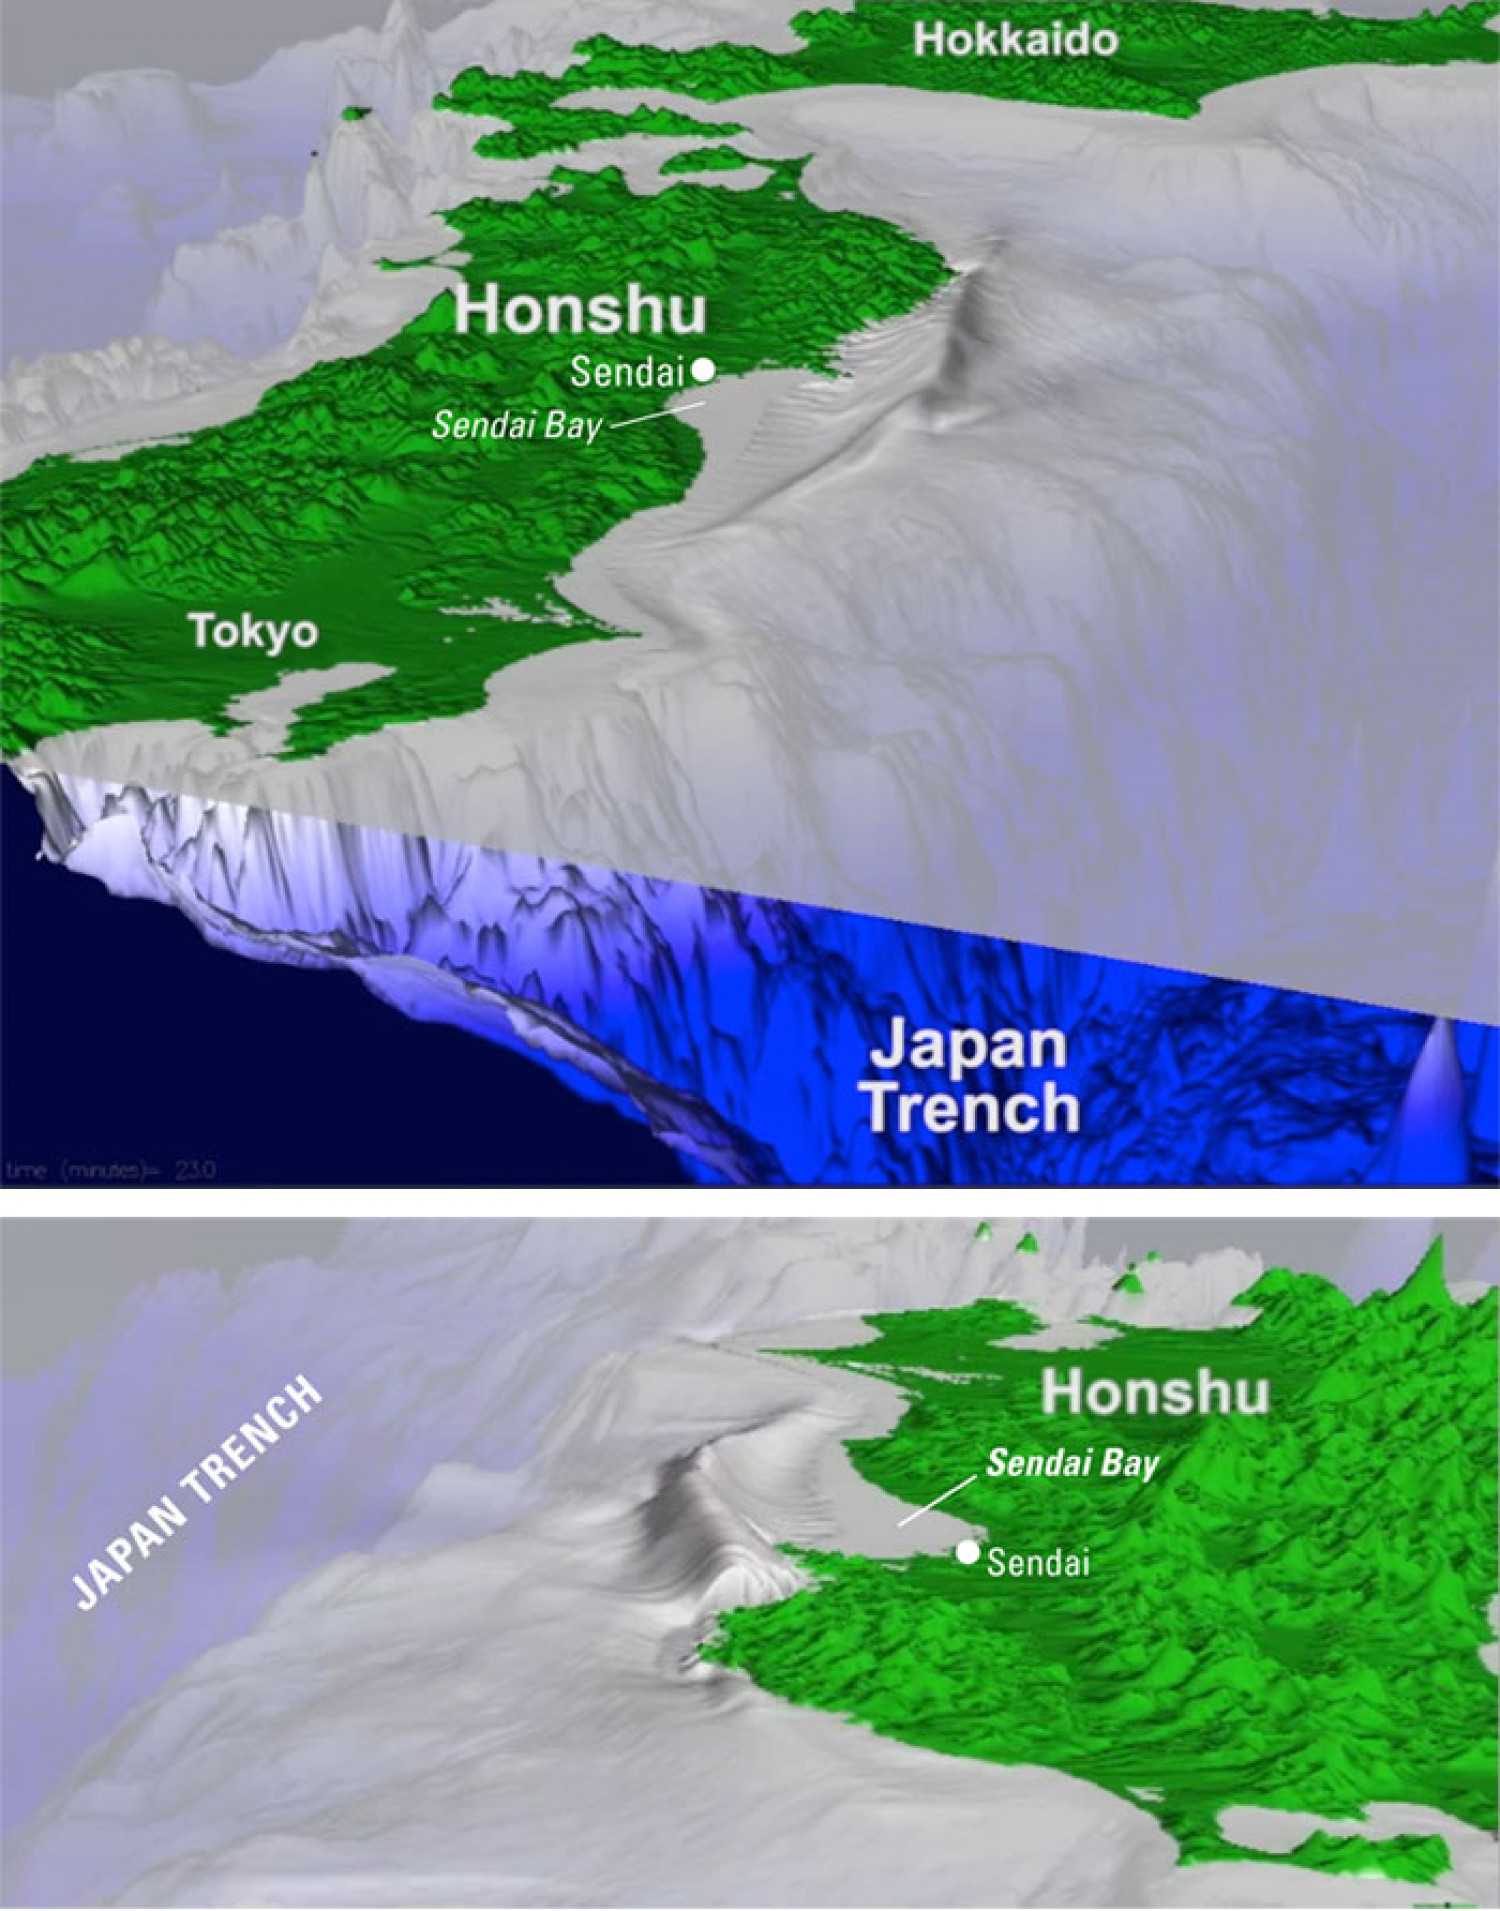 Japan Lashed by Powerful Earthquake, Devastating Tsunami Infographic